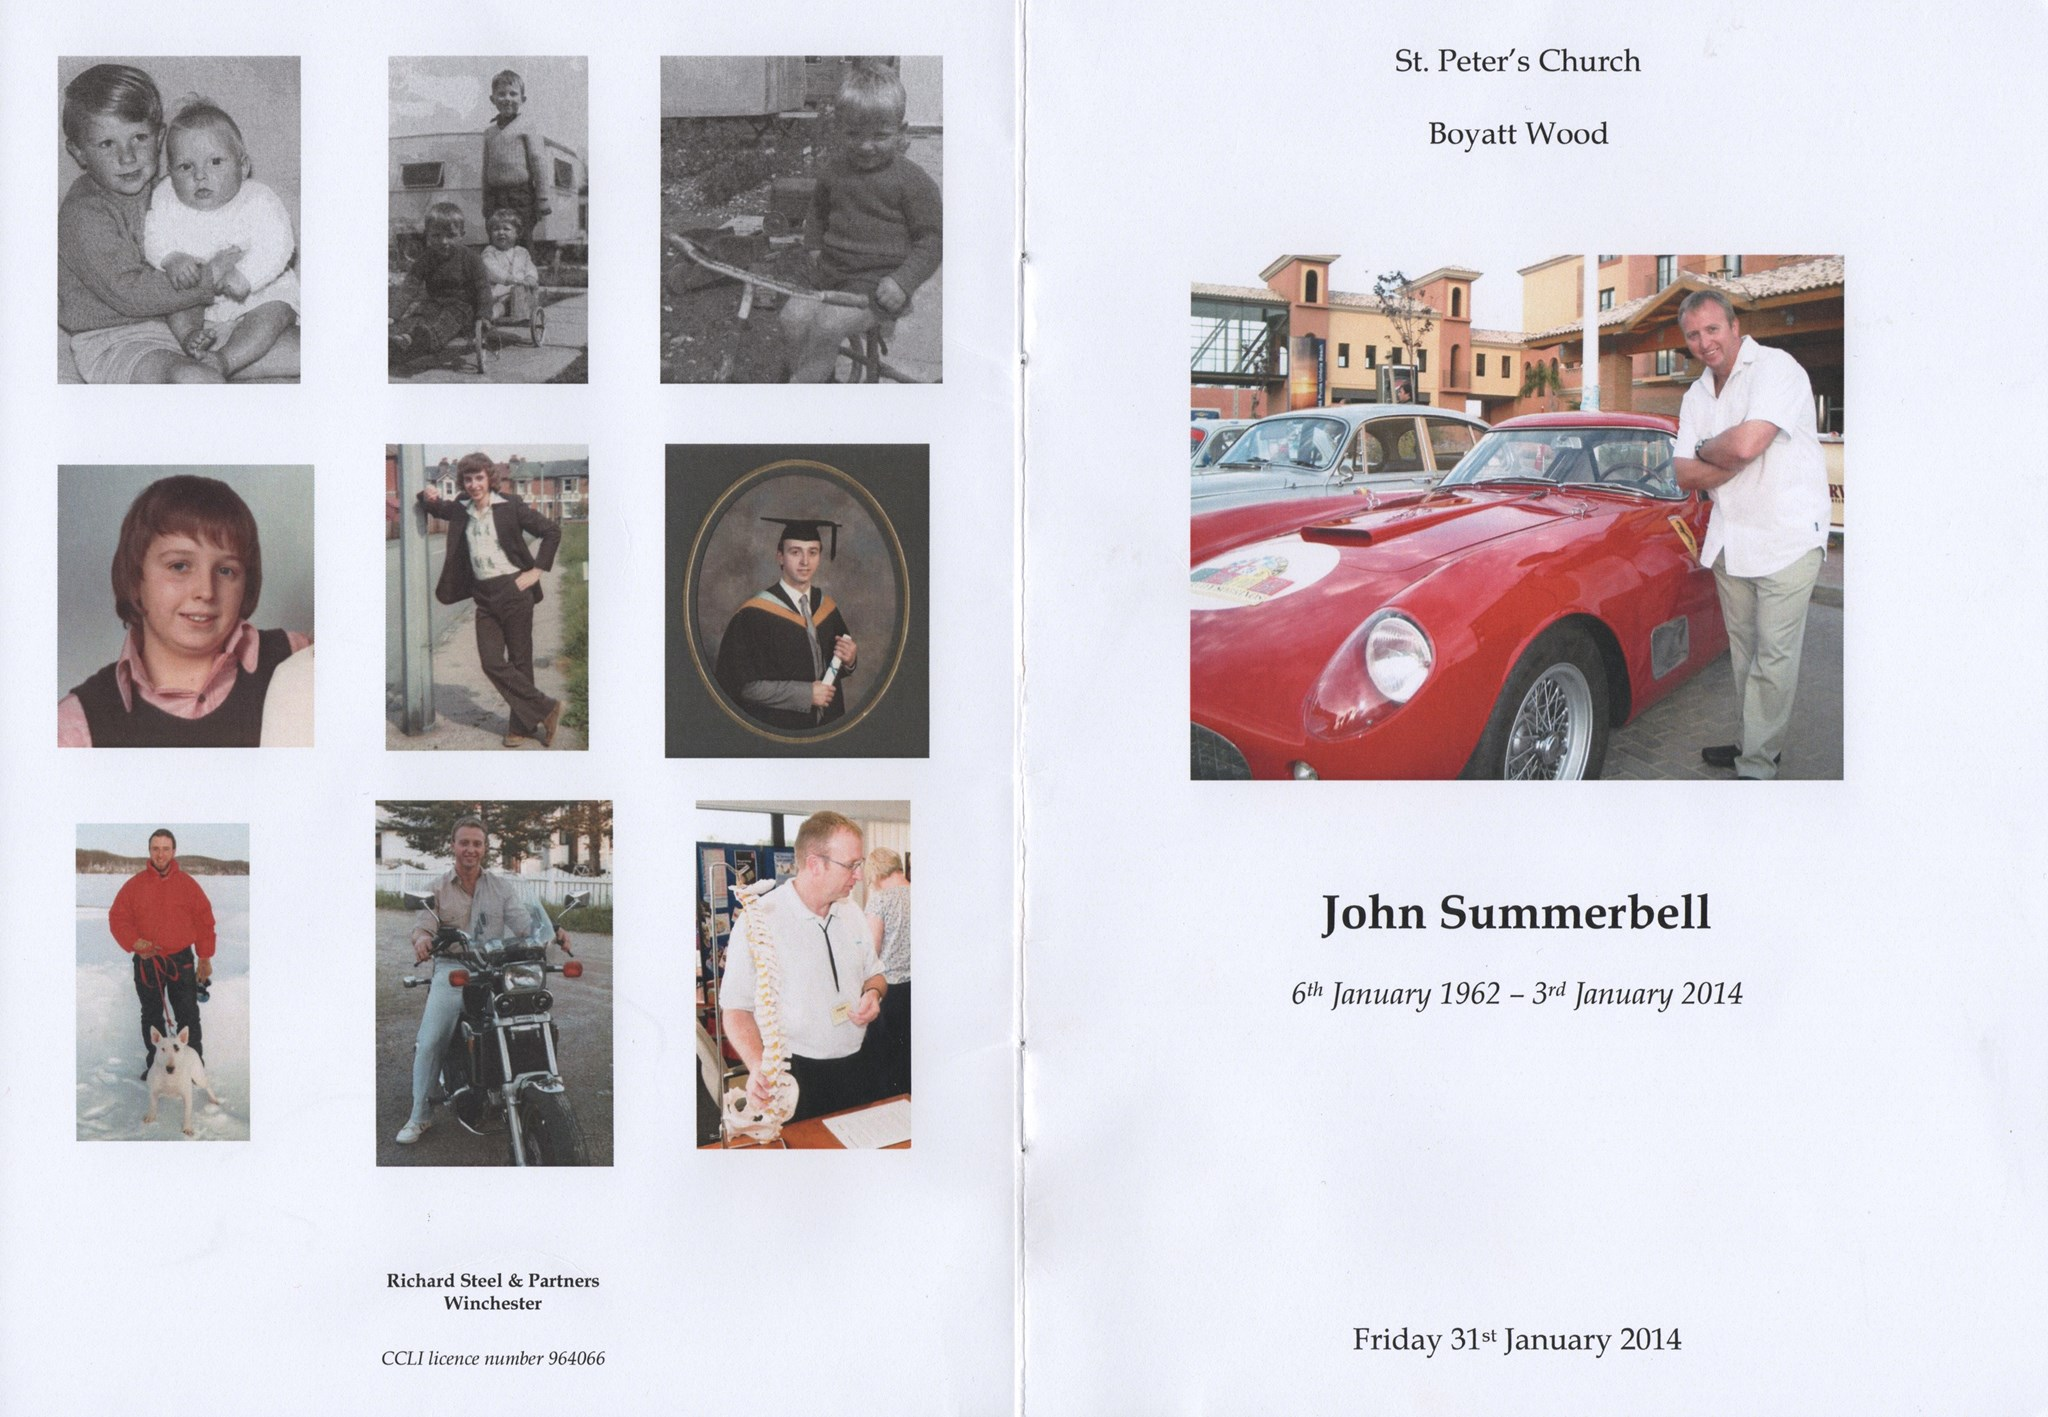 John Summerbell Order of Service pages 1 and 8